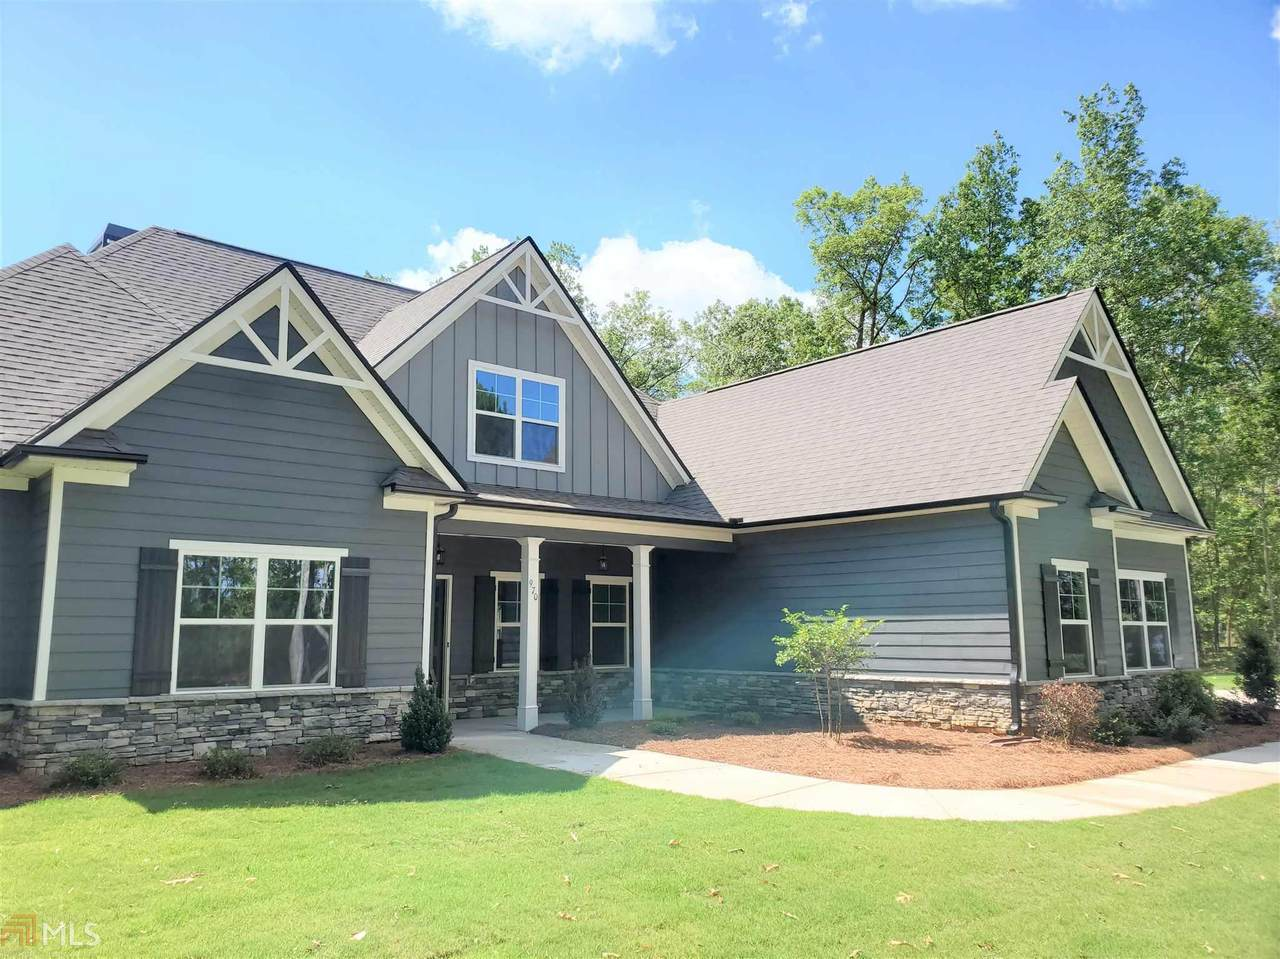 970 Lawshe Rd - Photo 1